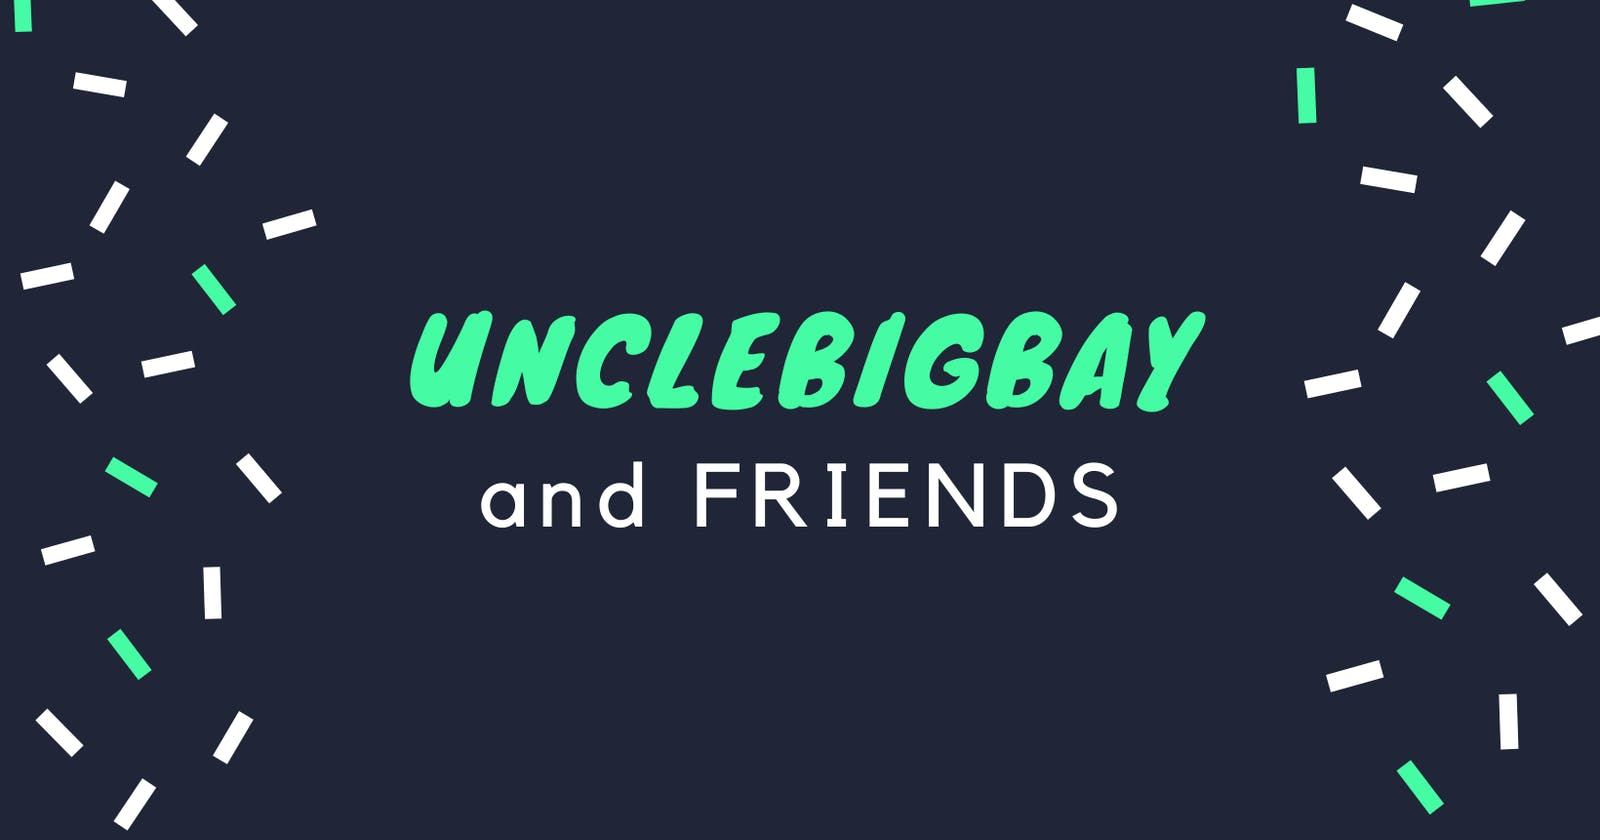 Unclebigbay and Friends so Far